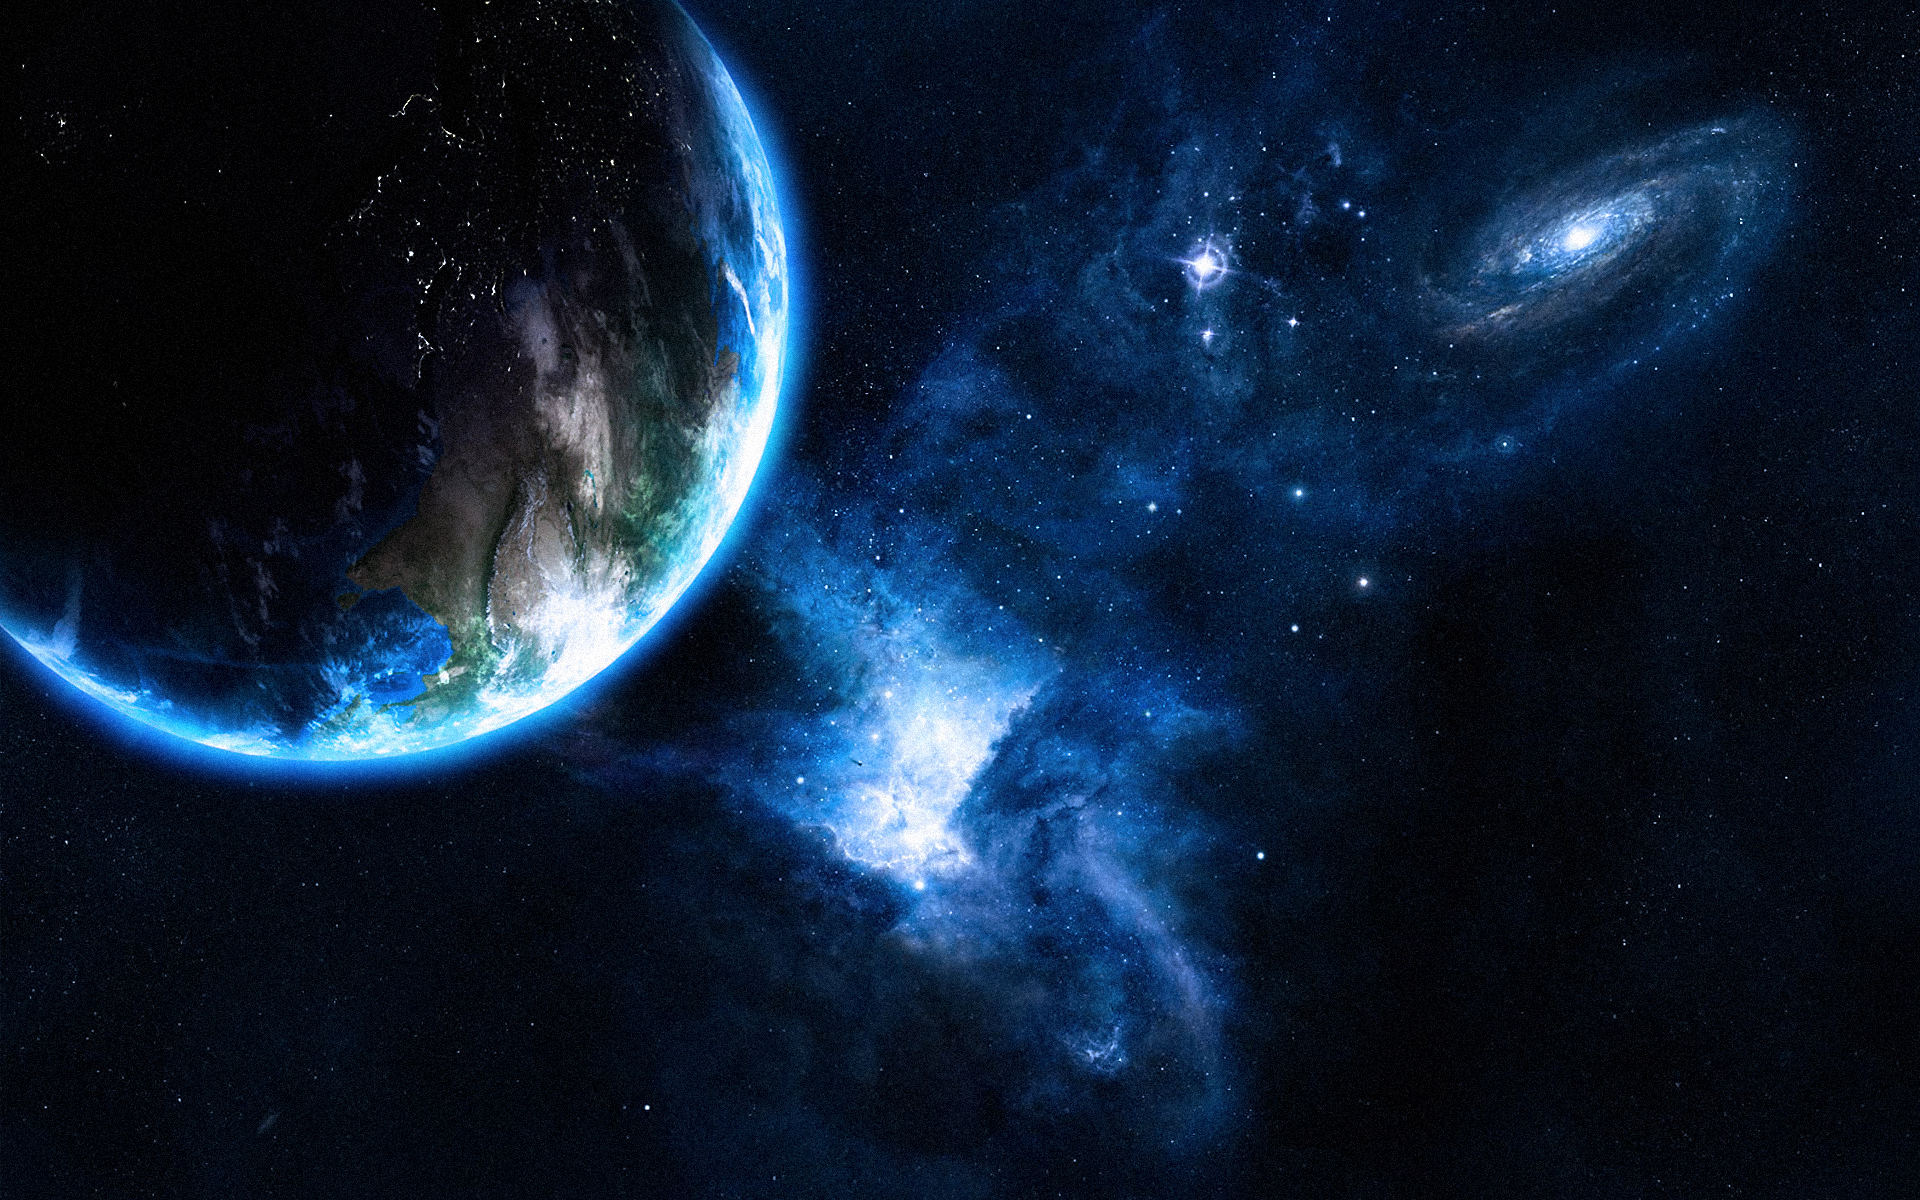 Planet Earth and the universe around